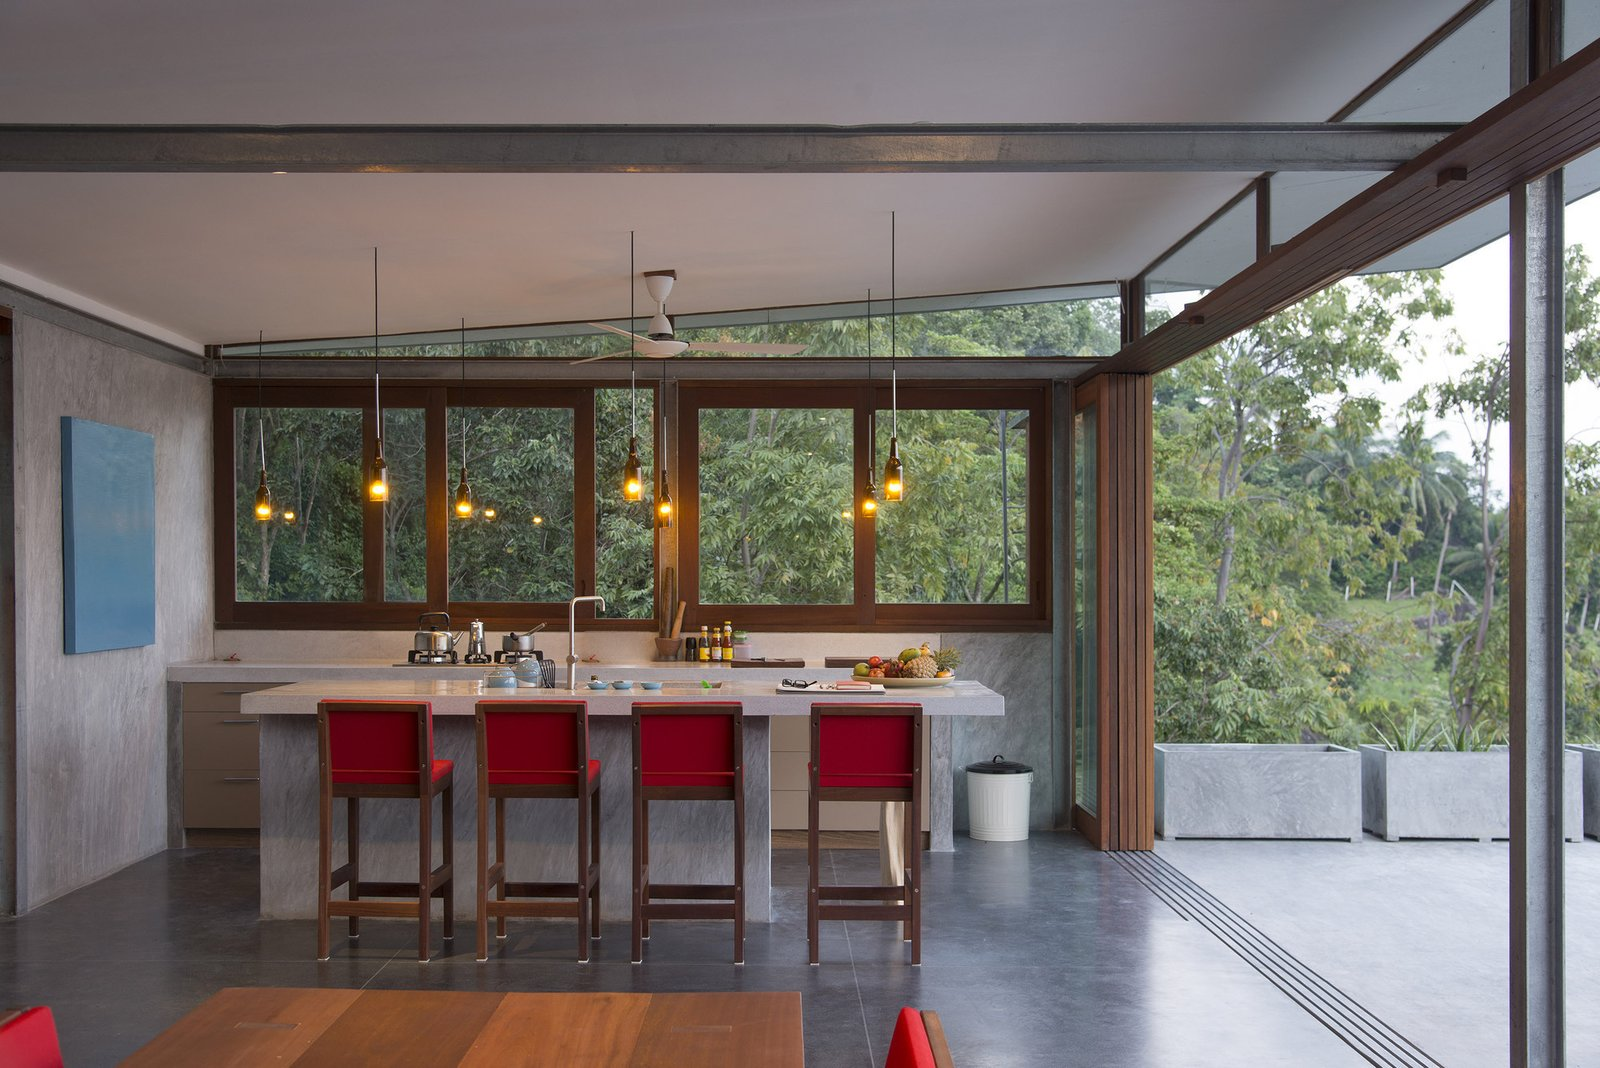 Trees, Bookcase, Sofa, Metal Fences, Wall, Chair, Kitchen, Side Yard, Concrete Floor, Range, Pendant Lighting, and Stone Counter  Photo 7 of 11 in Take a Trip to This Photographer-Designed Concrete Home in Thailand